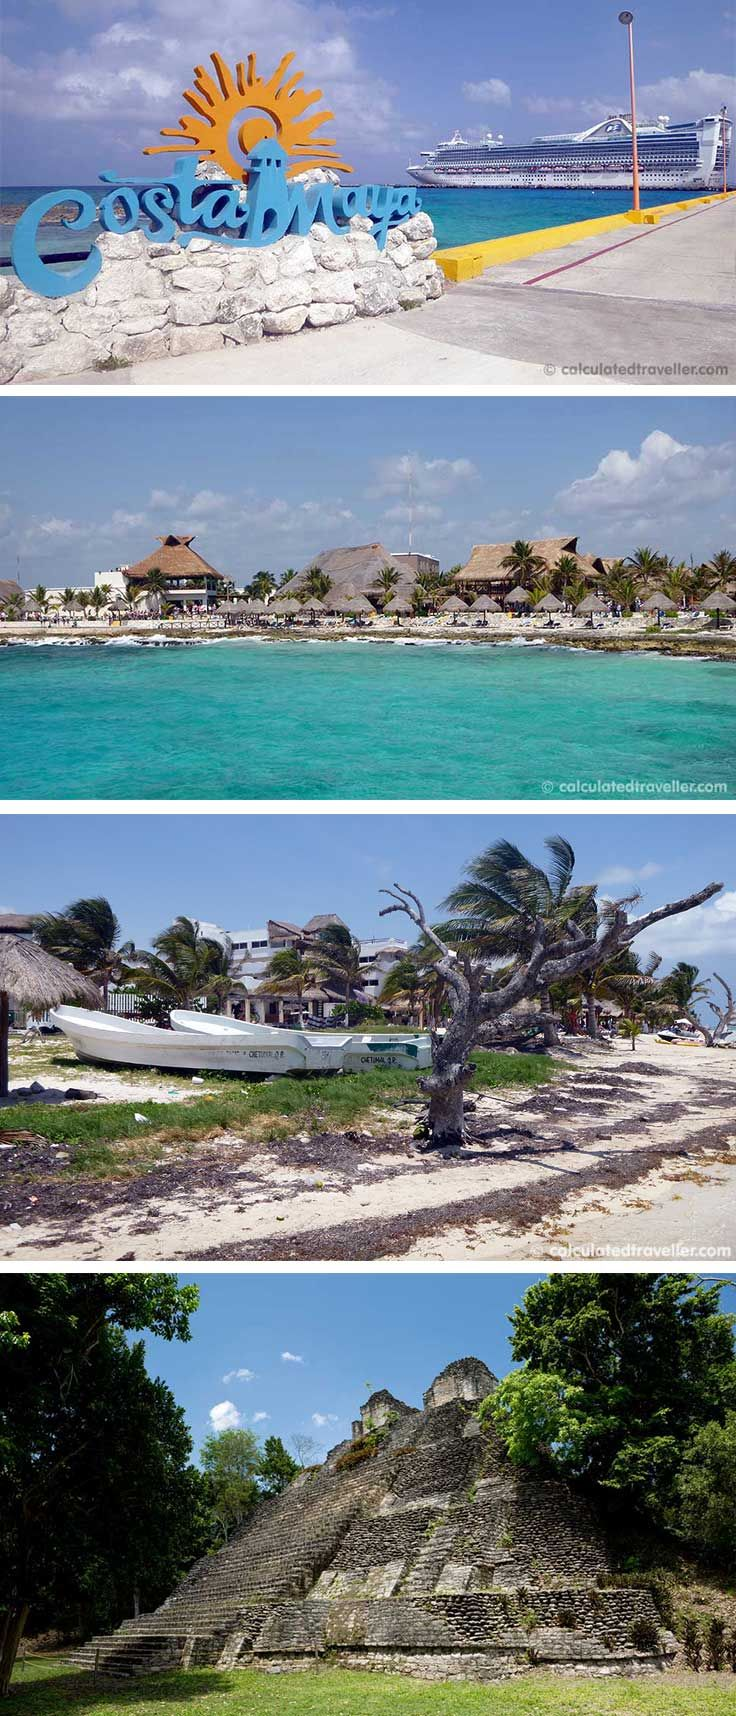 Three very different adventures in Mahahual, Costa Maya, Mexico  by Calculated Traveller. Each one perfect for the cruise ship passenger who only has…